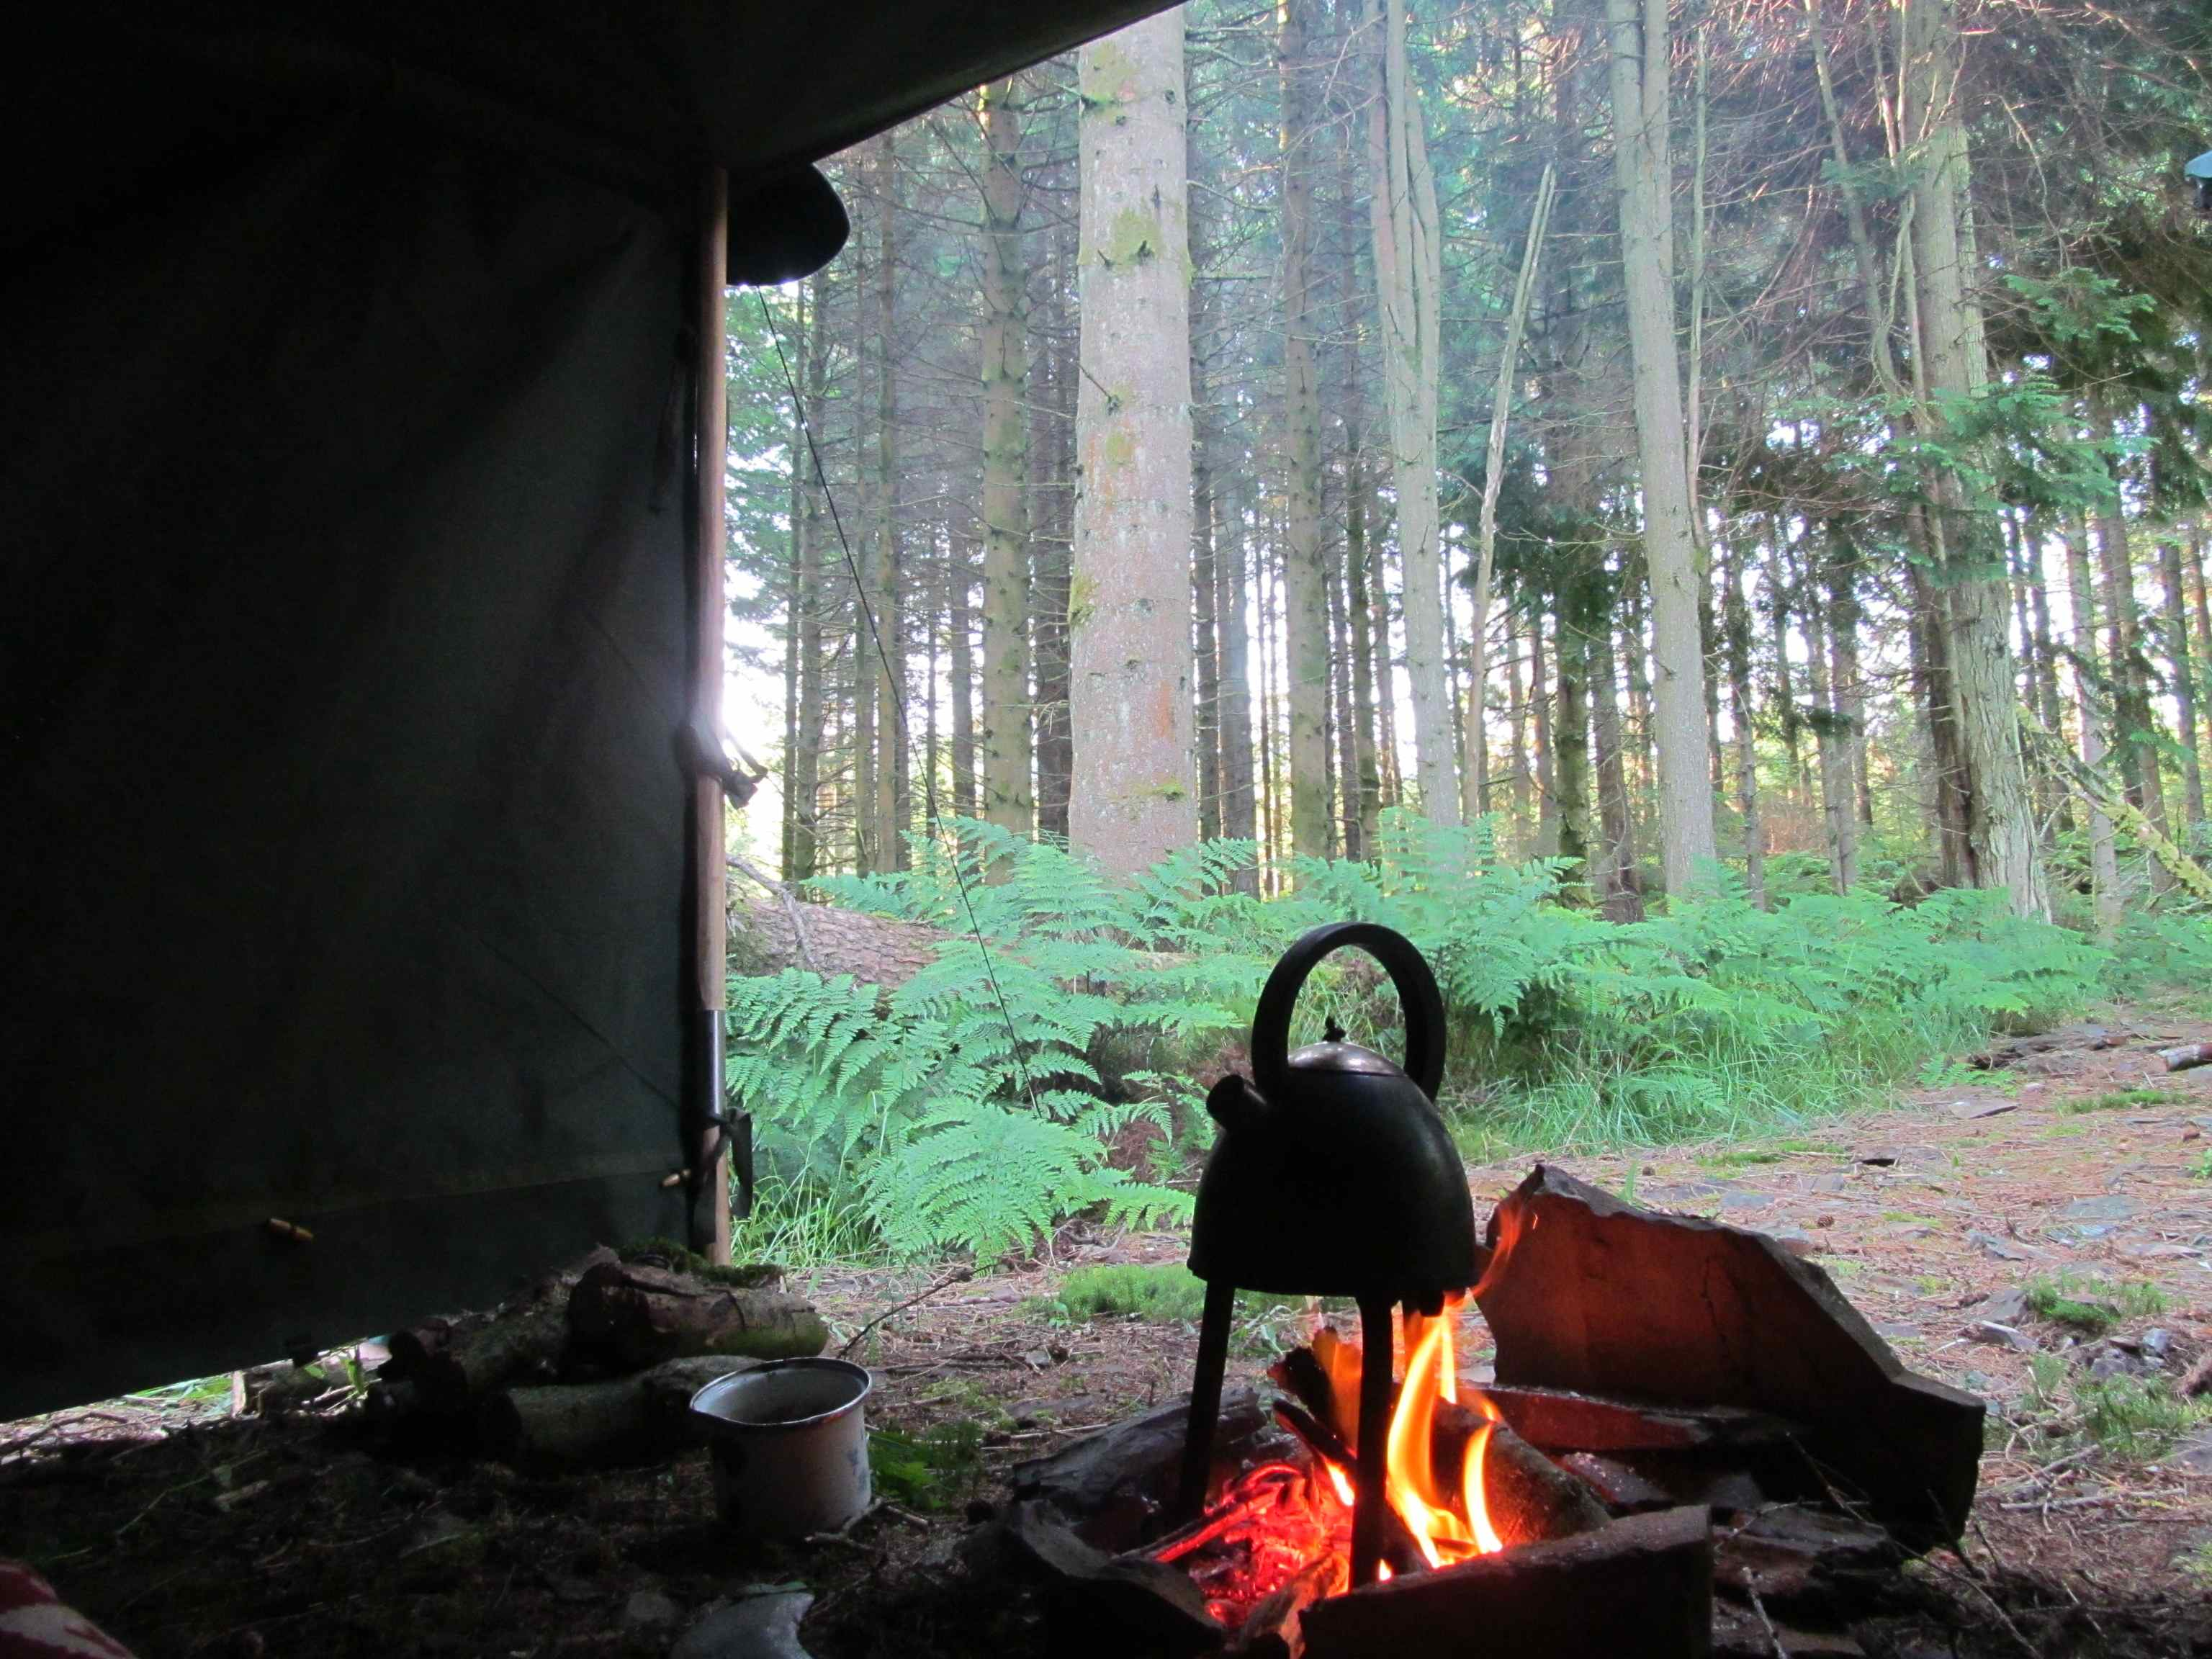 Morning Kettle on Campfire